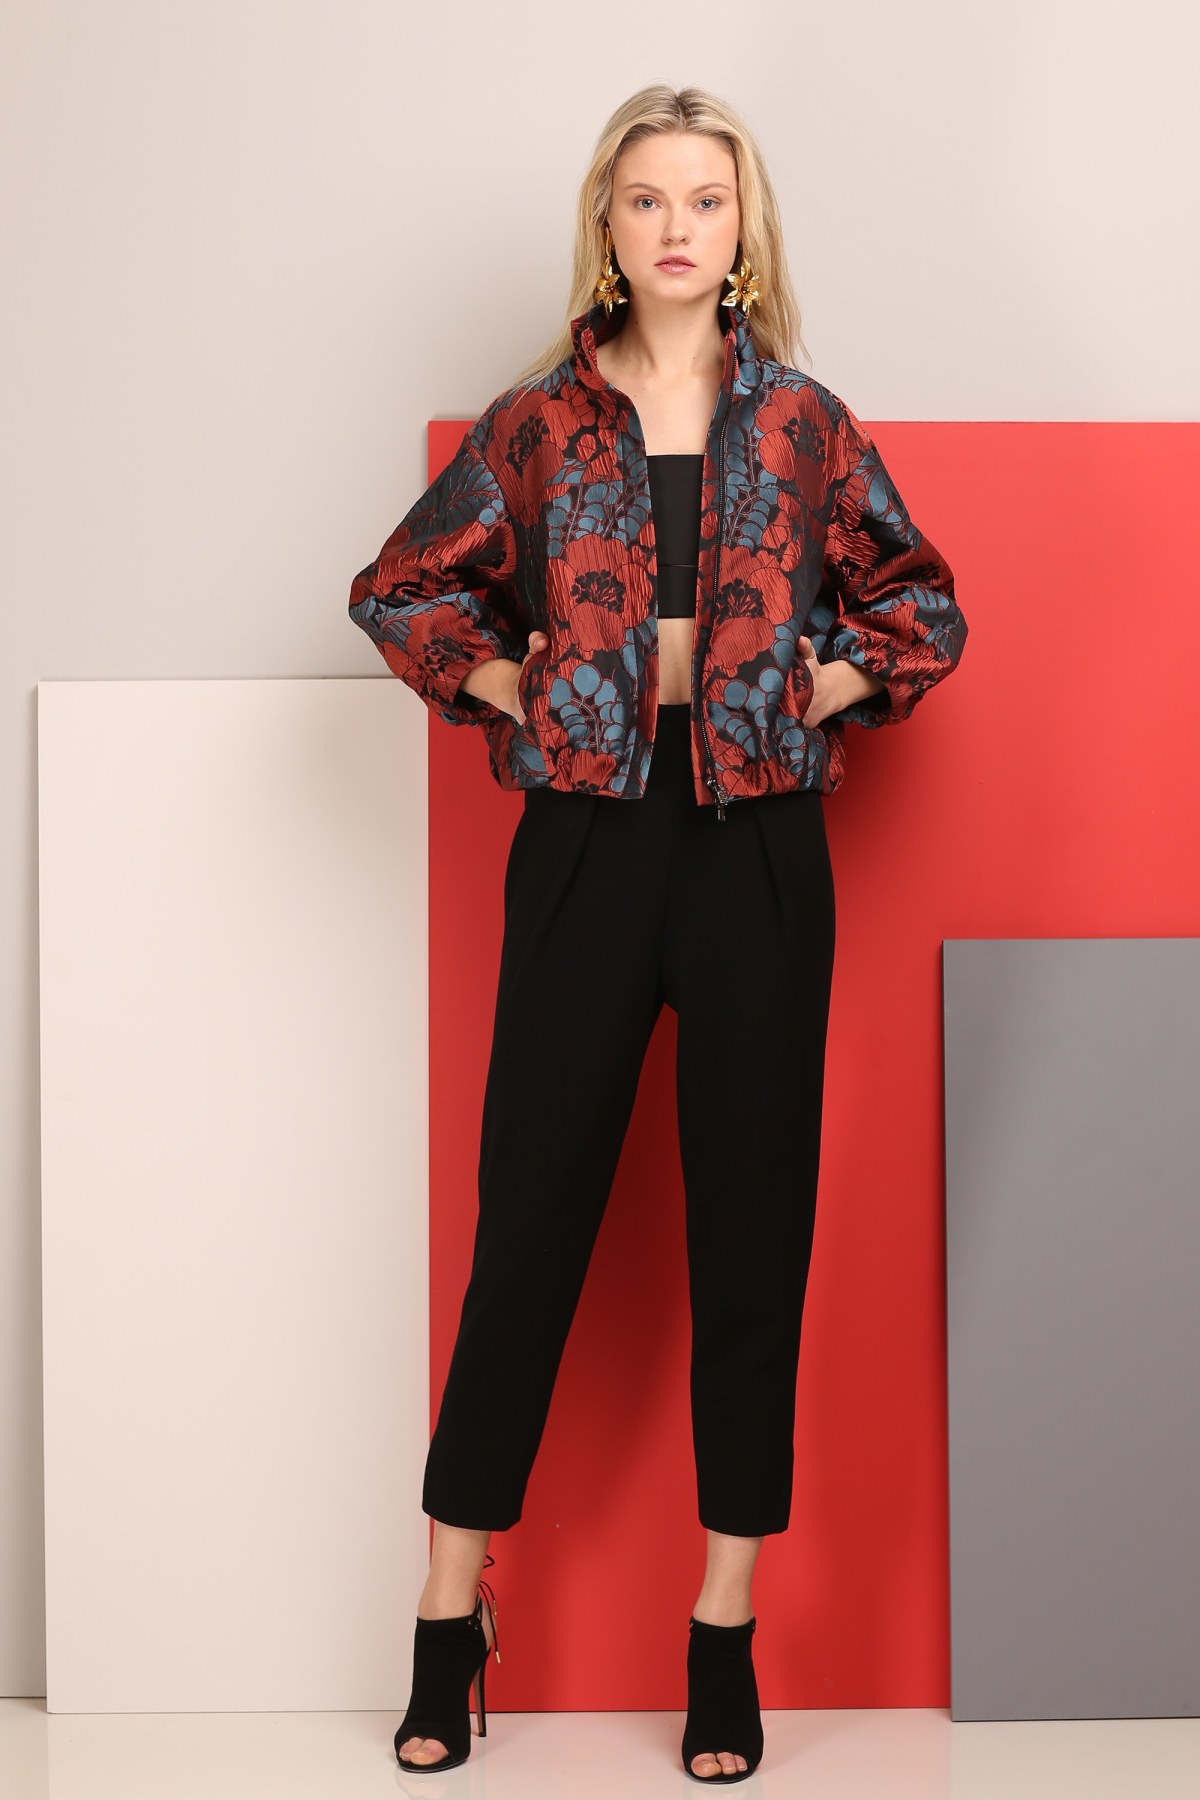 josie-natori-pre-fall-2017-fashion-show-the-impression-02